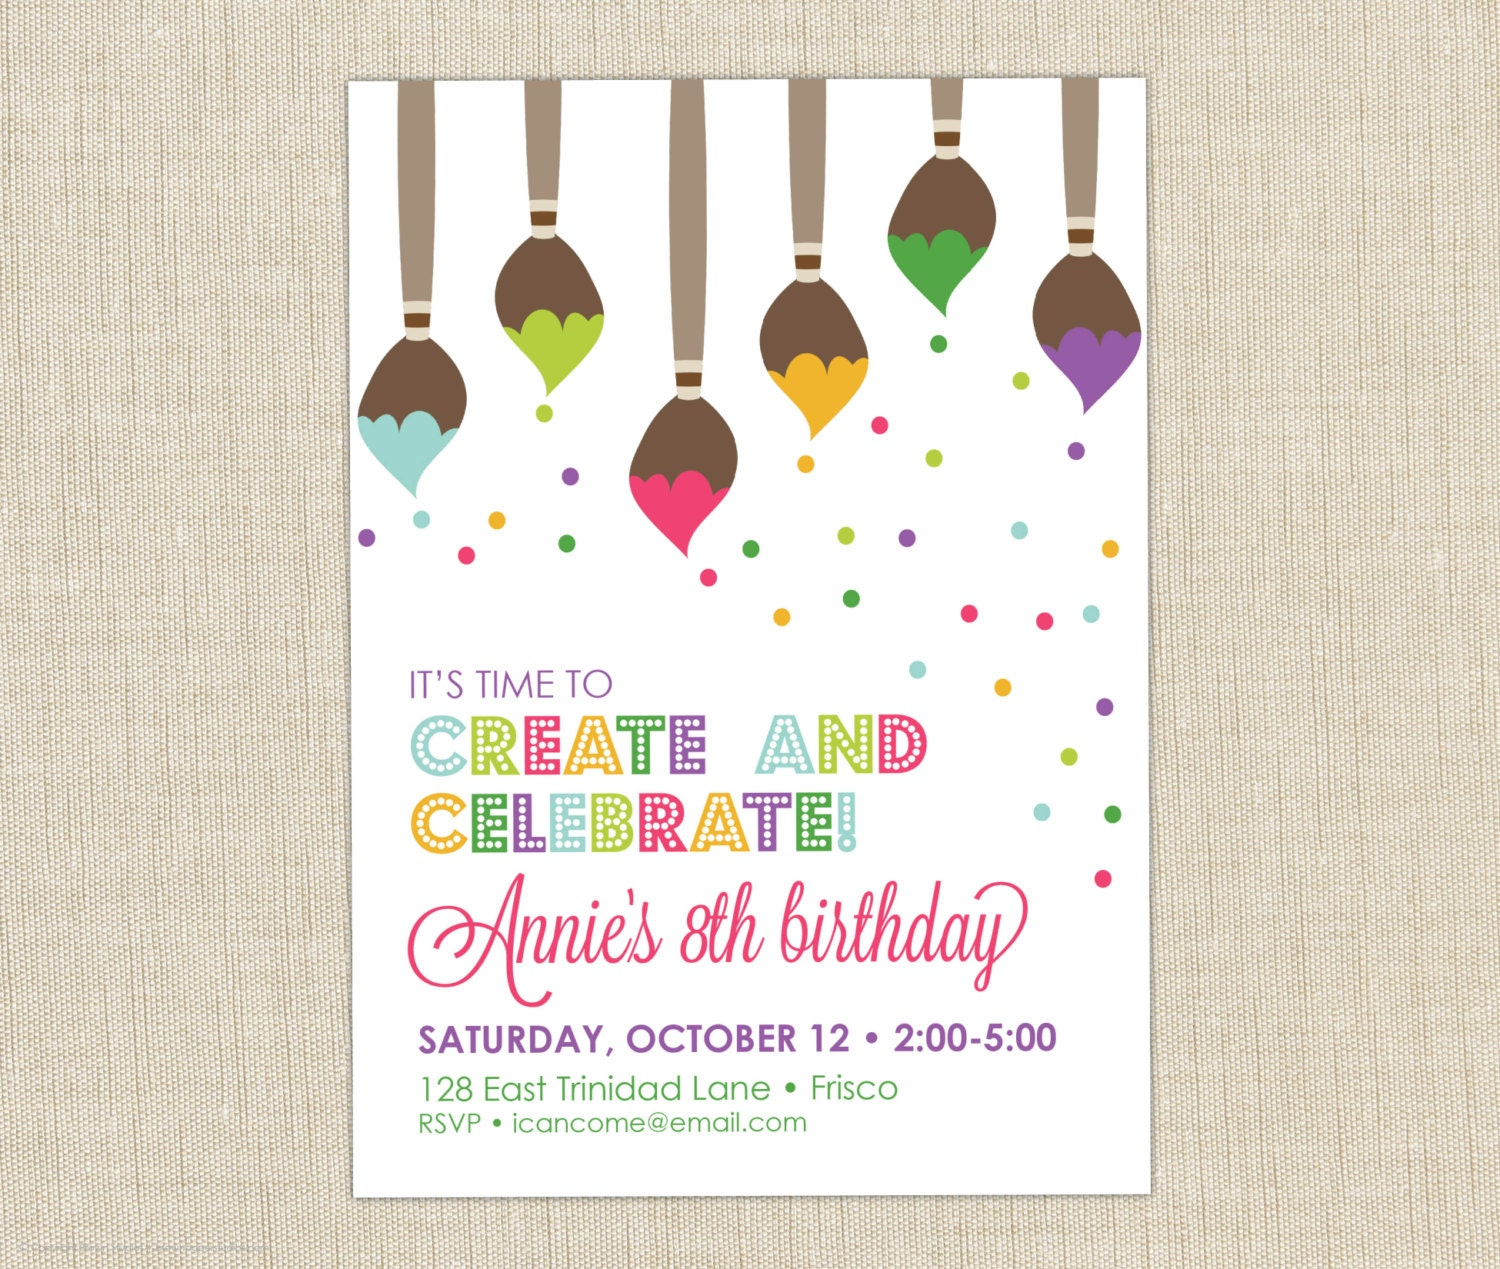 paint party invitation. art birthday party invitation. art, Birthday invitations